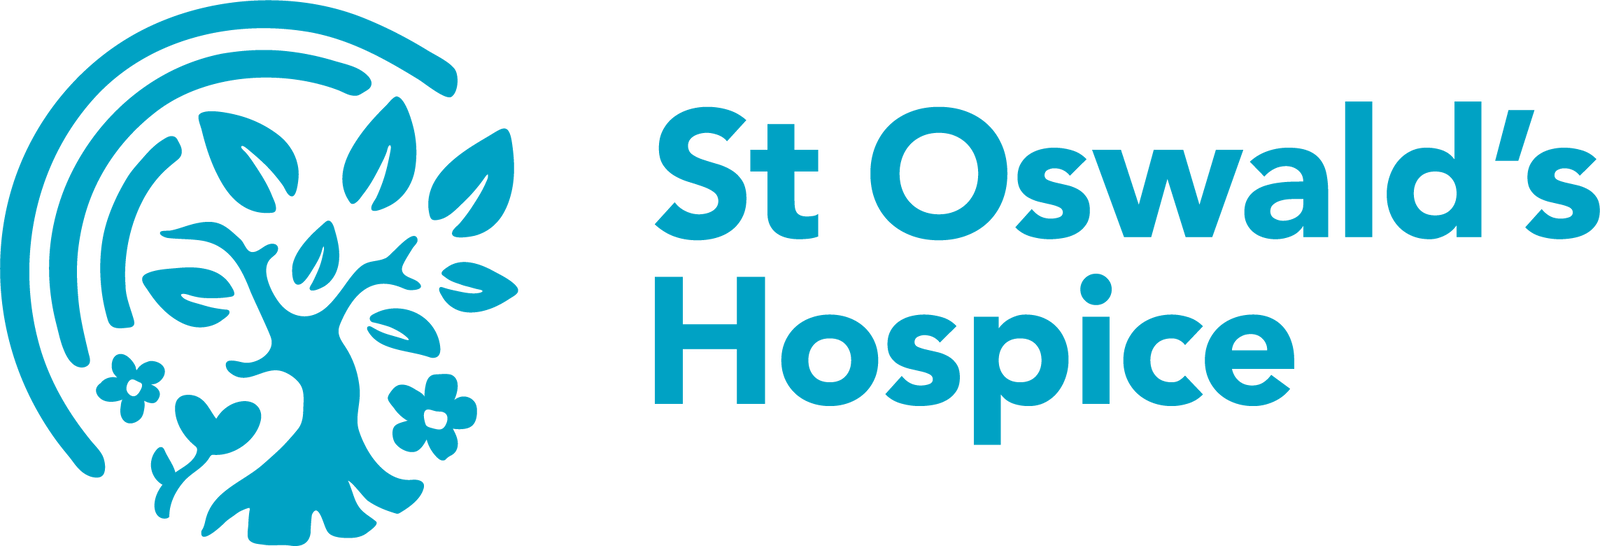 St. Oswald s Hospice Limited